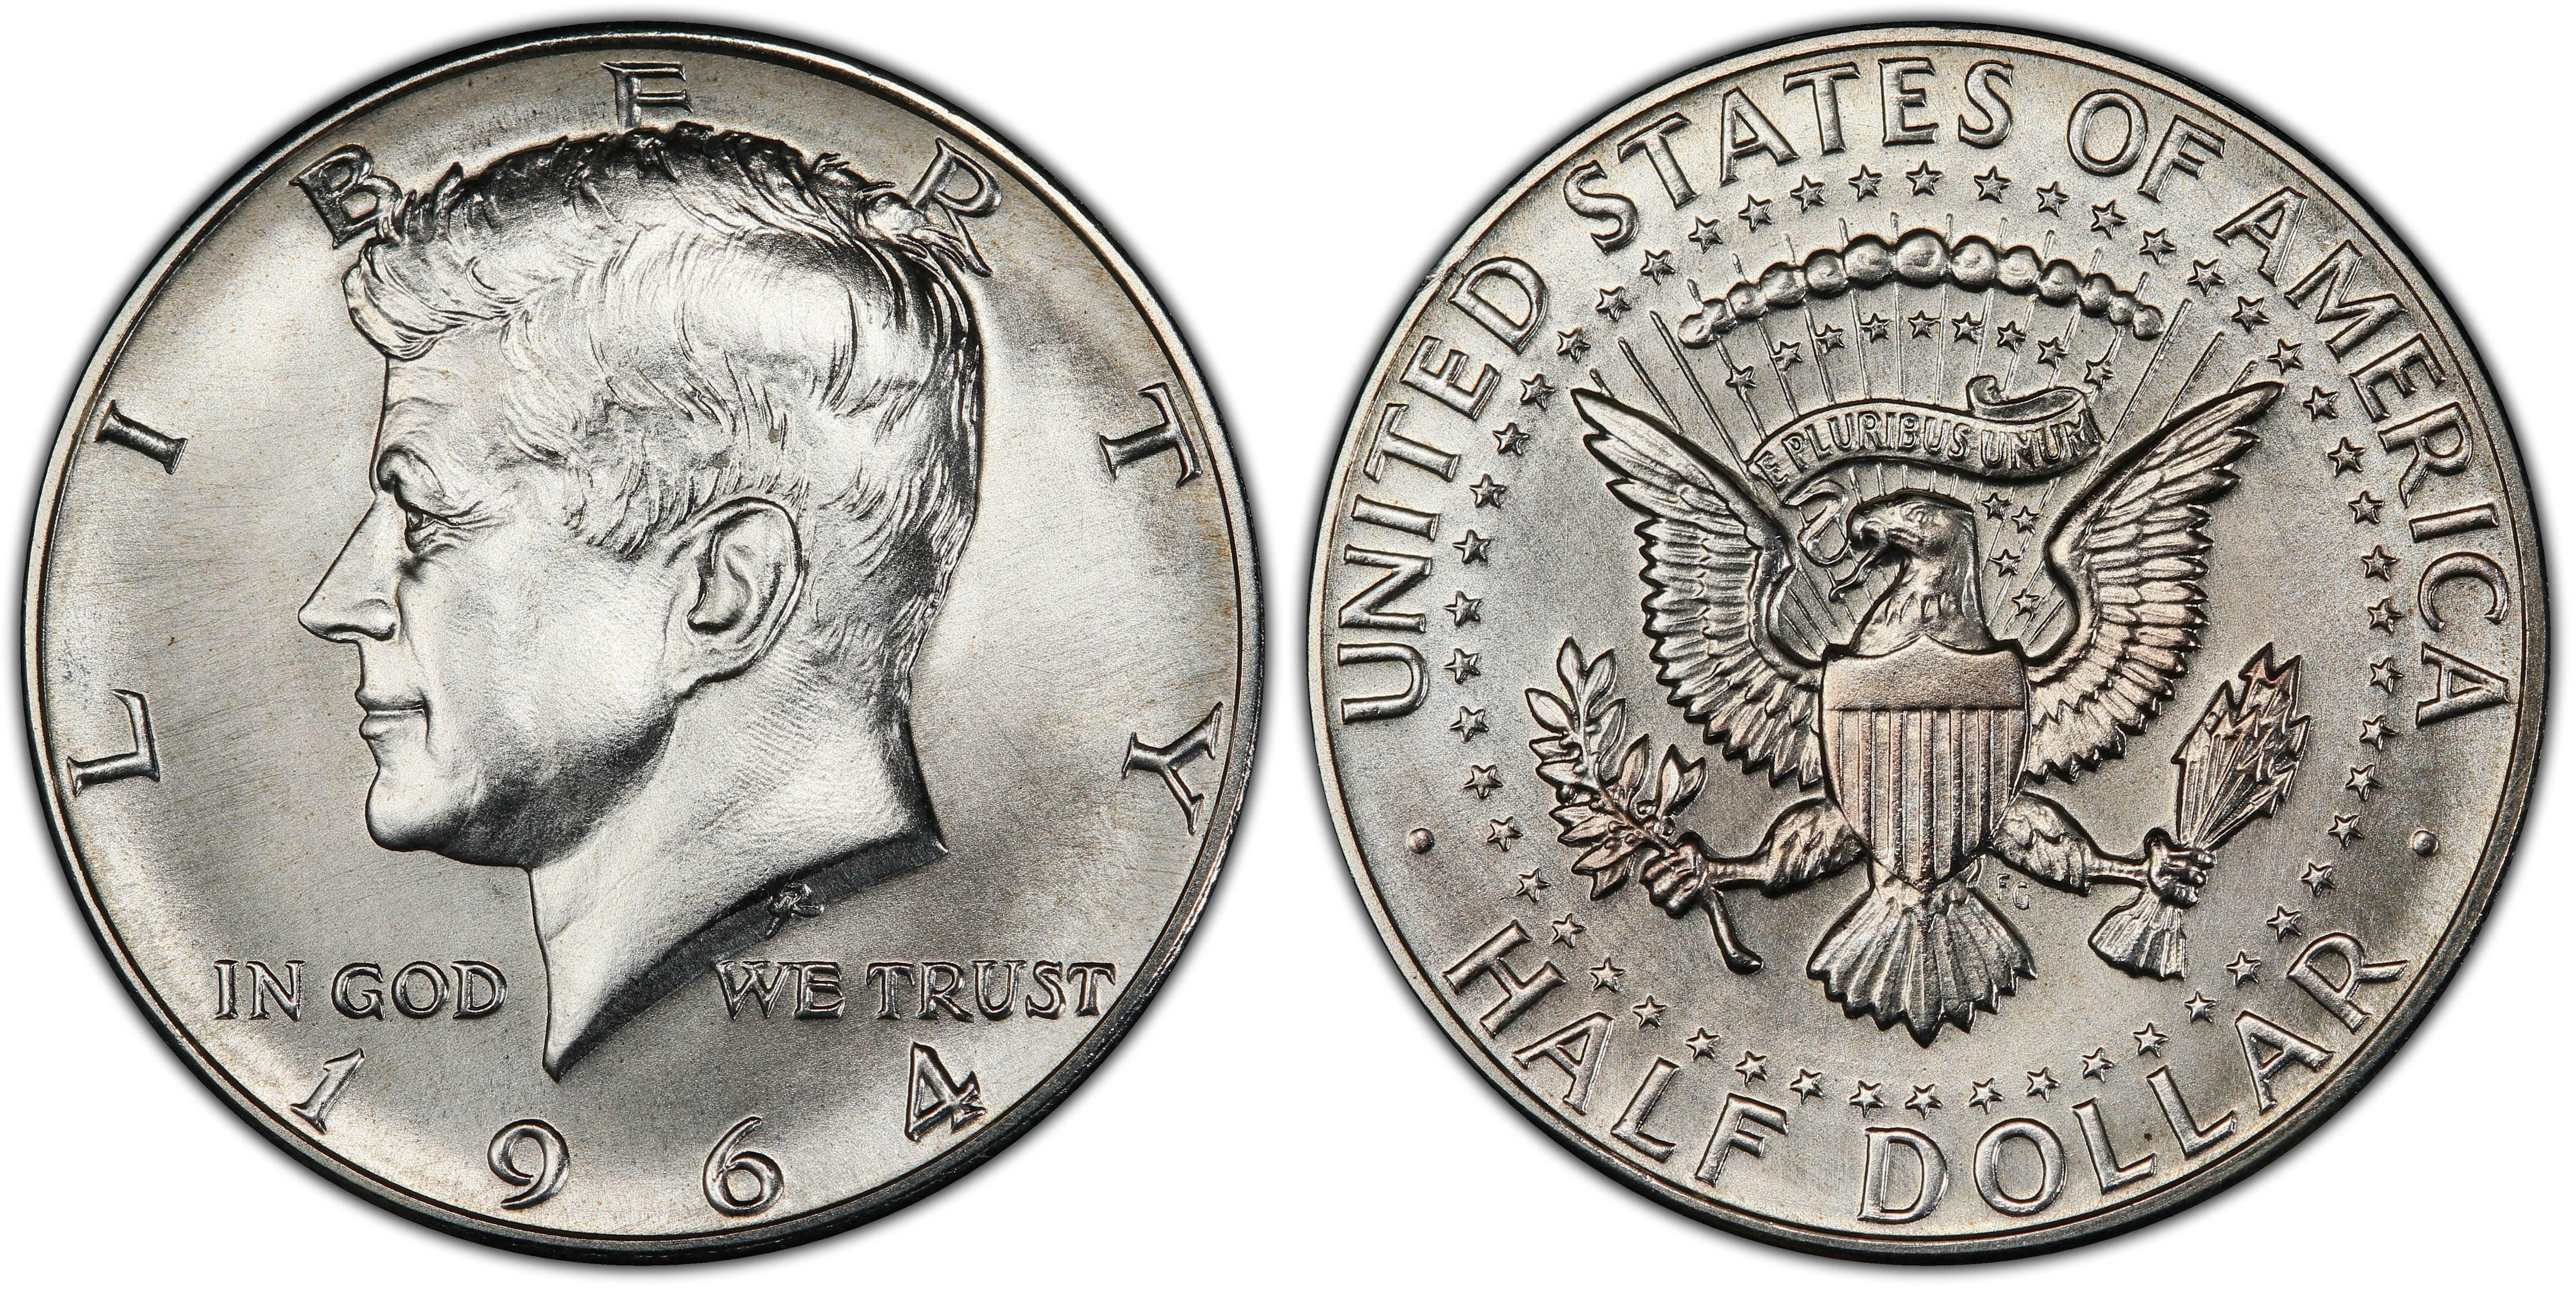 1979-P KENNEDY UNCIRCULATED CLEAR SHARP HALF DOLLAR.===BU===C//N=================